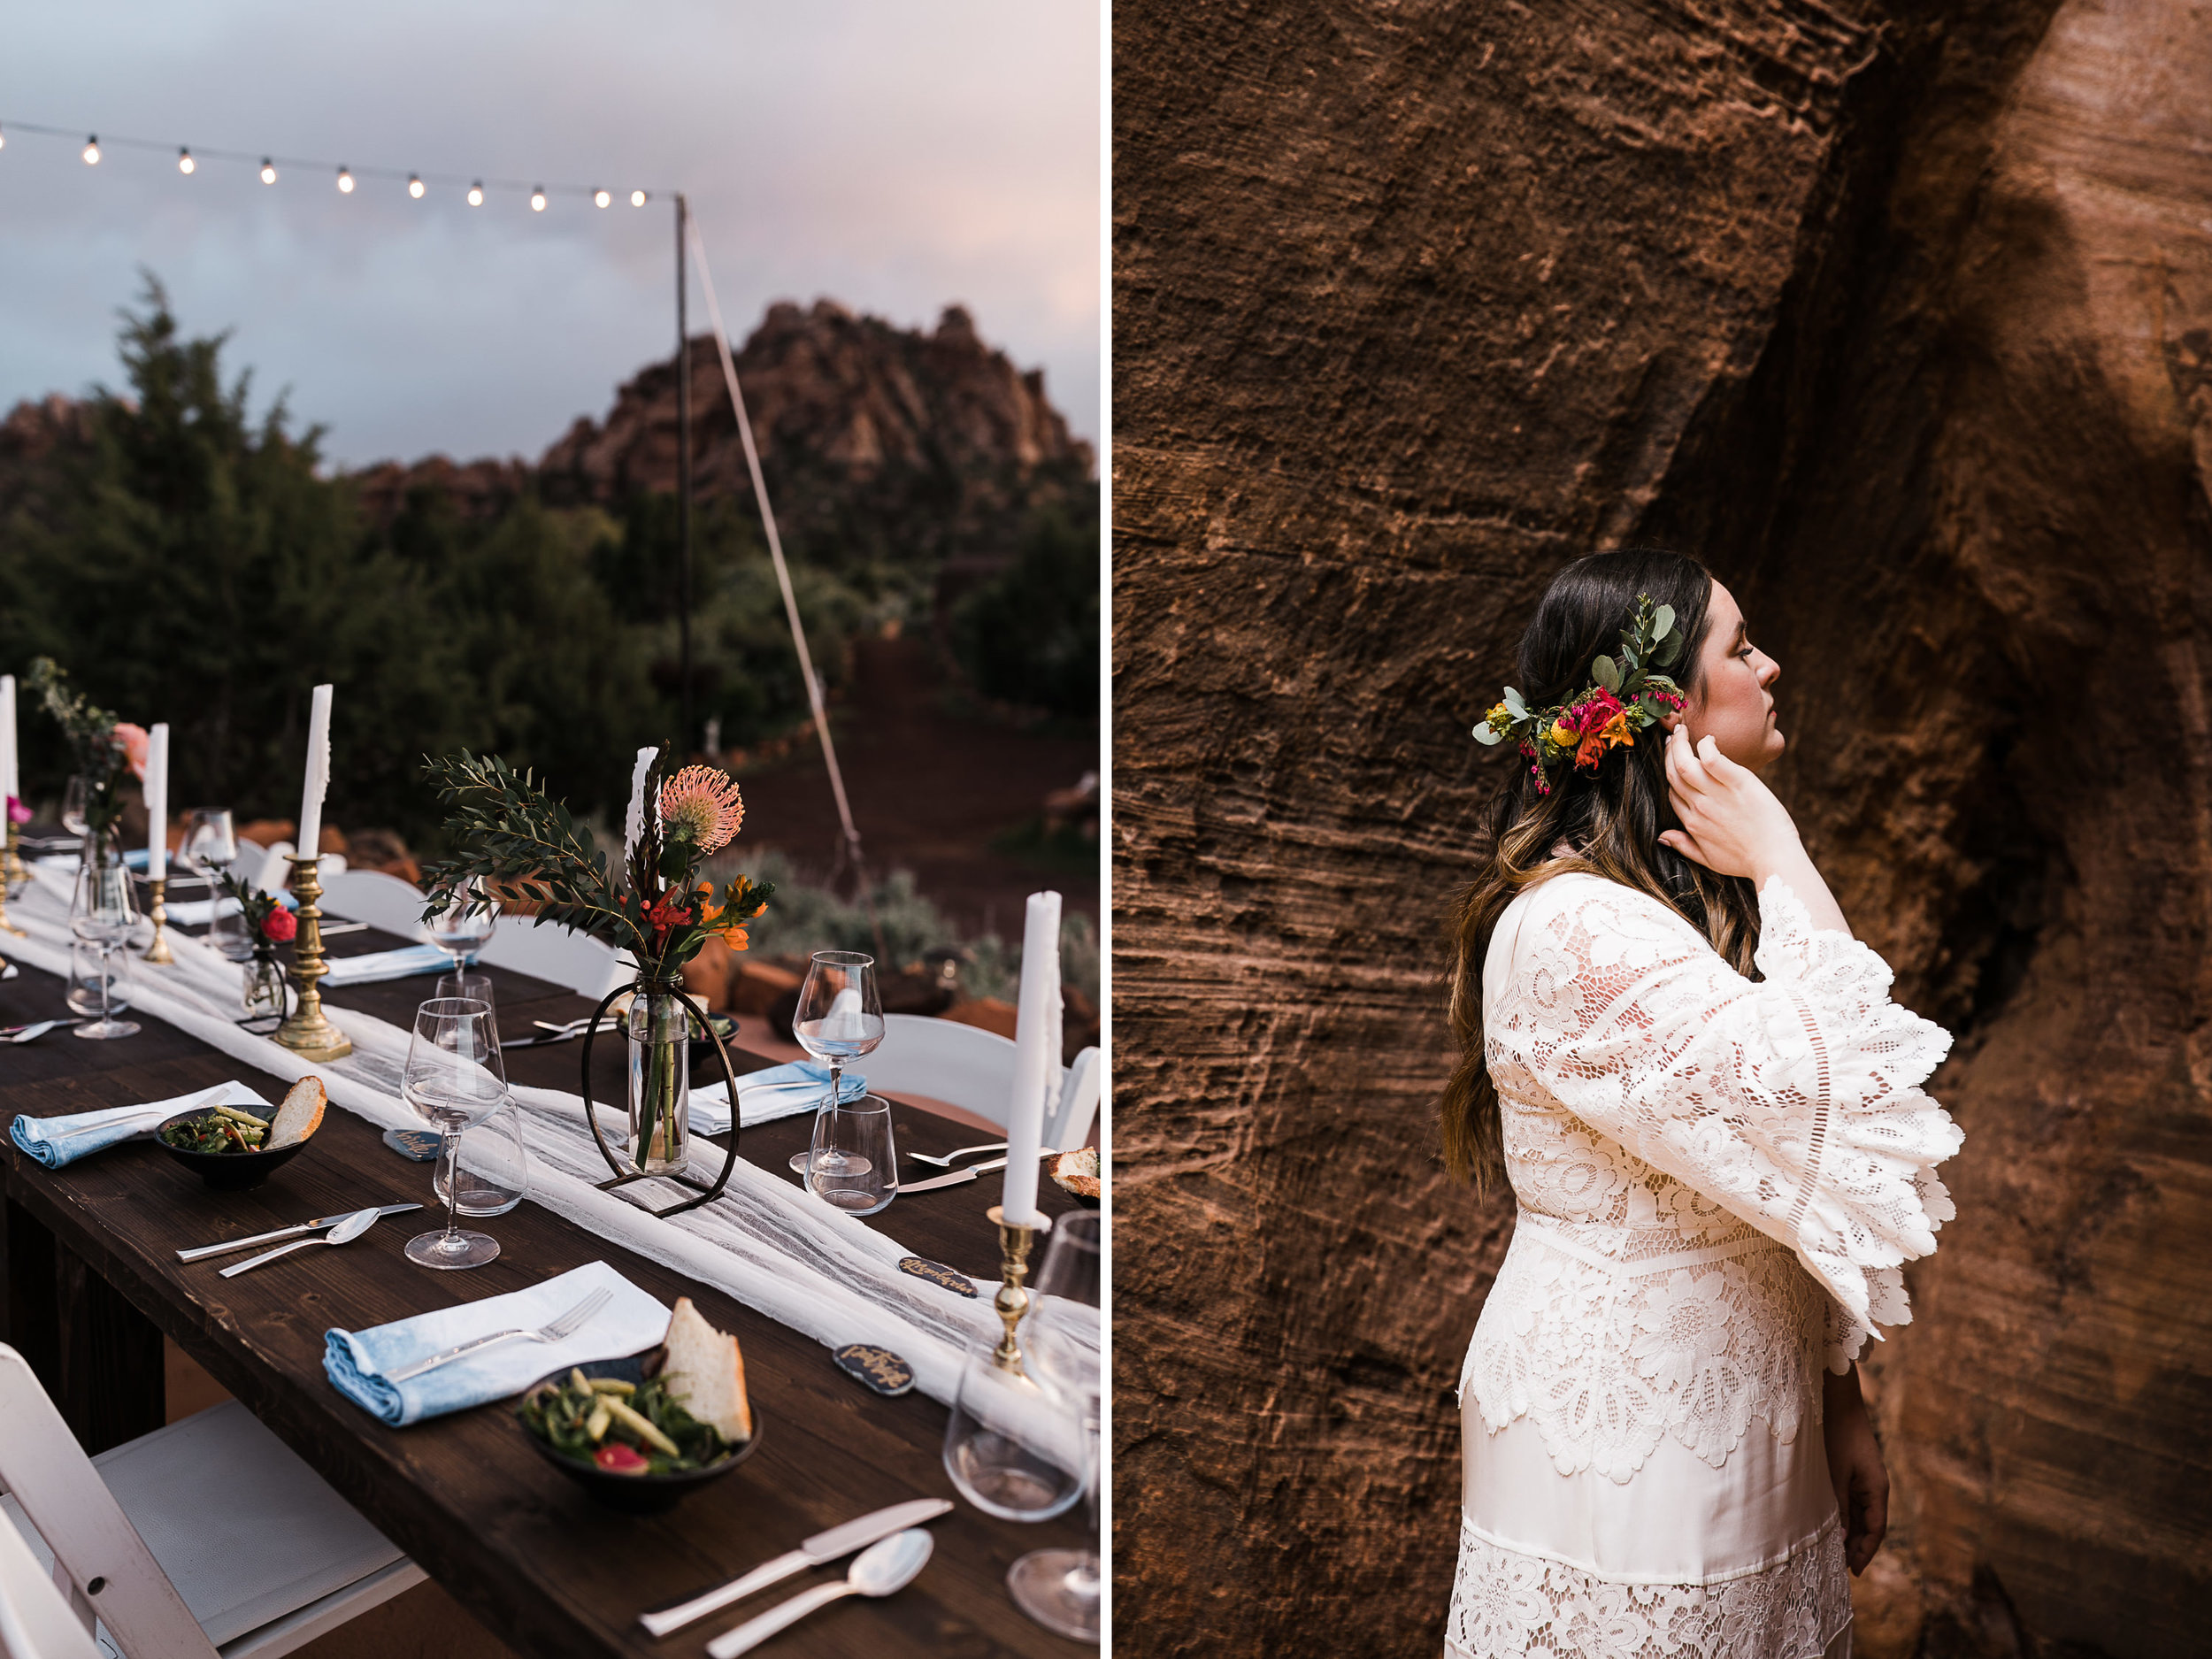 styled elopement dinner ideas | sunset intimate wedding in the desert | the hearnes adventure photography